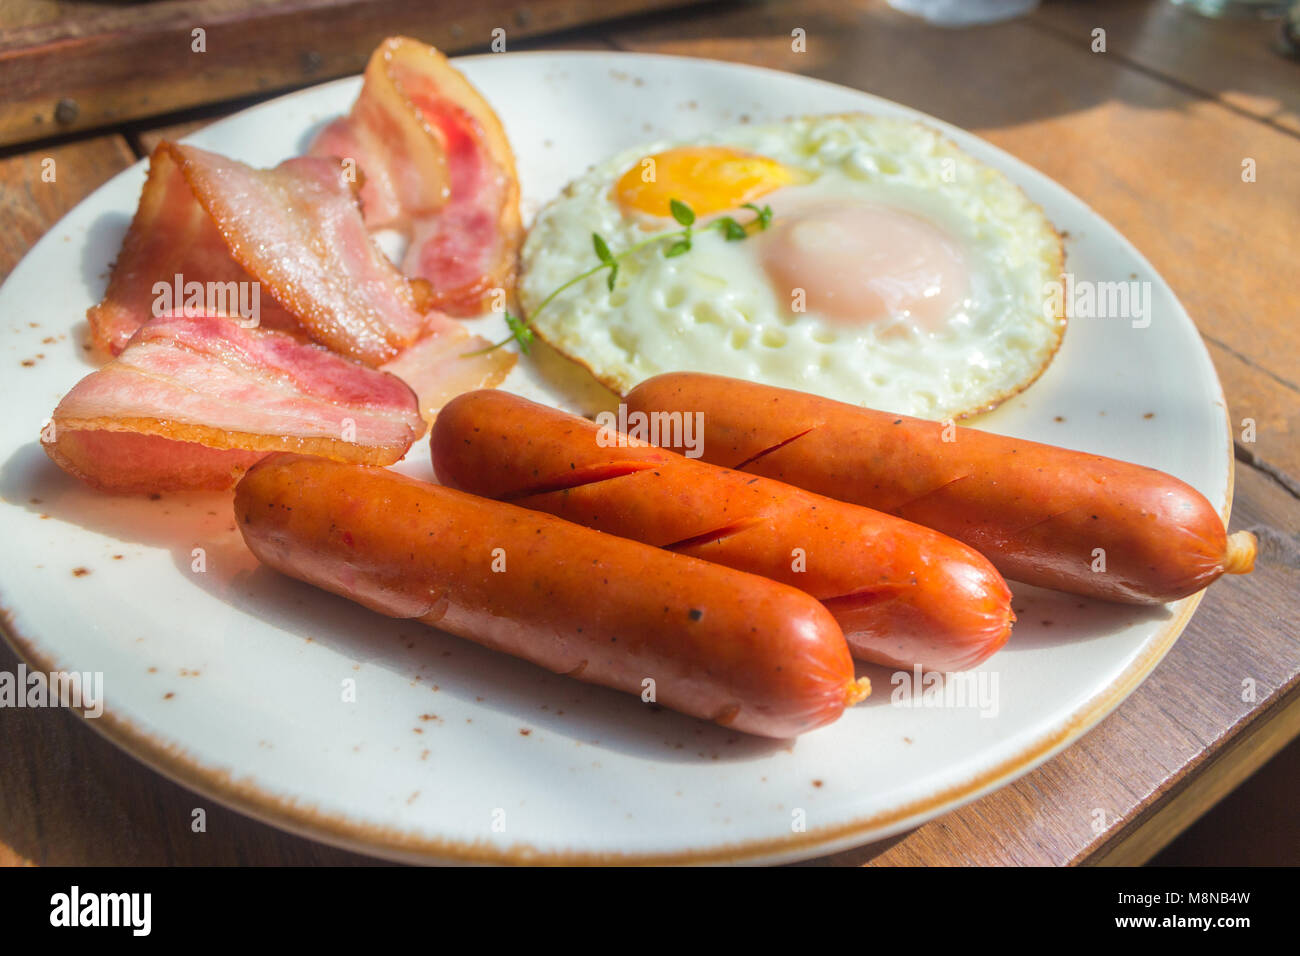 Set of american breakfast with bacon, fried eggs and sausage on wood table background Stock Photo